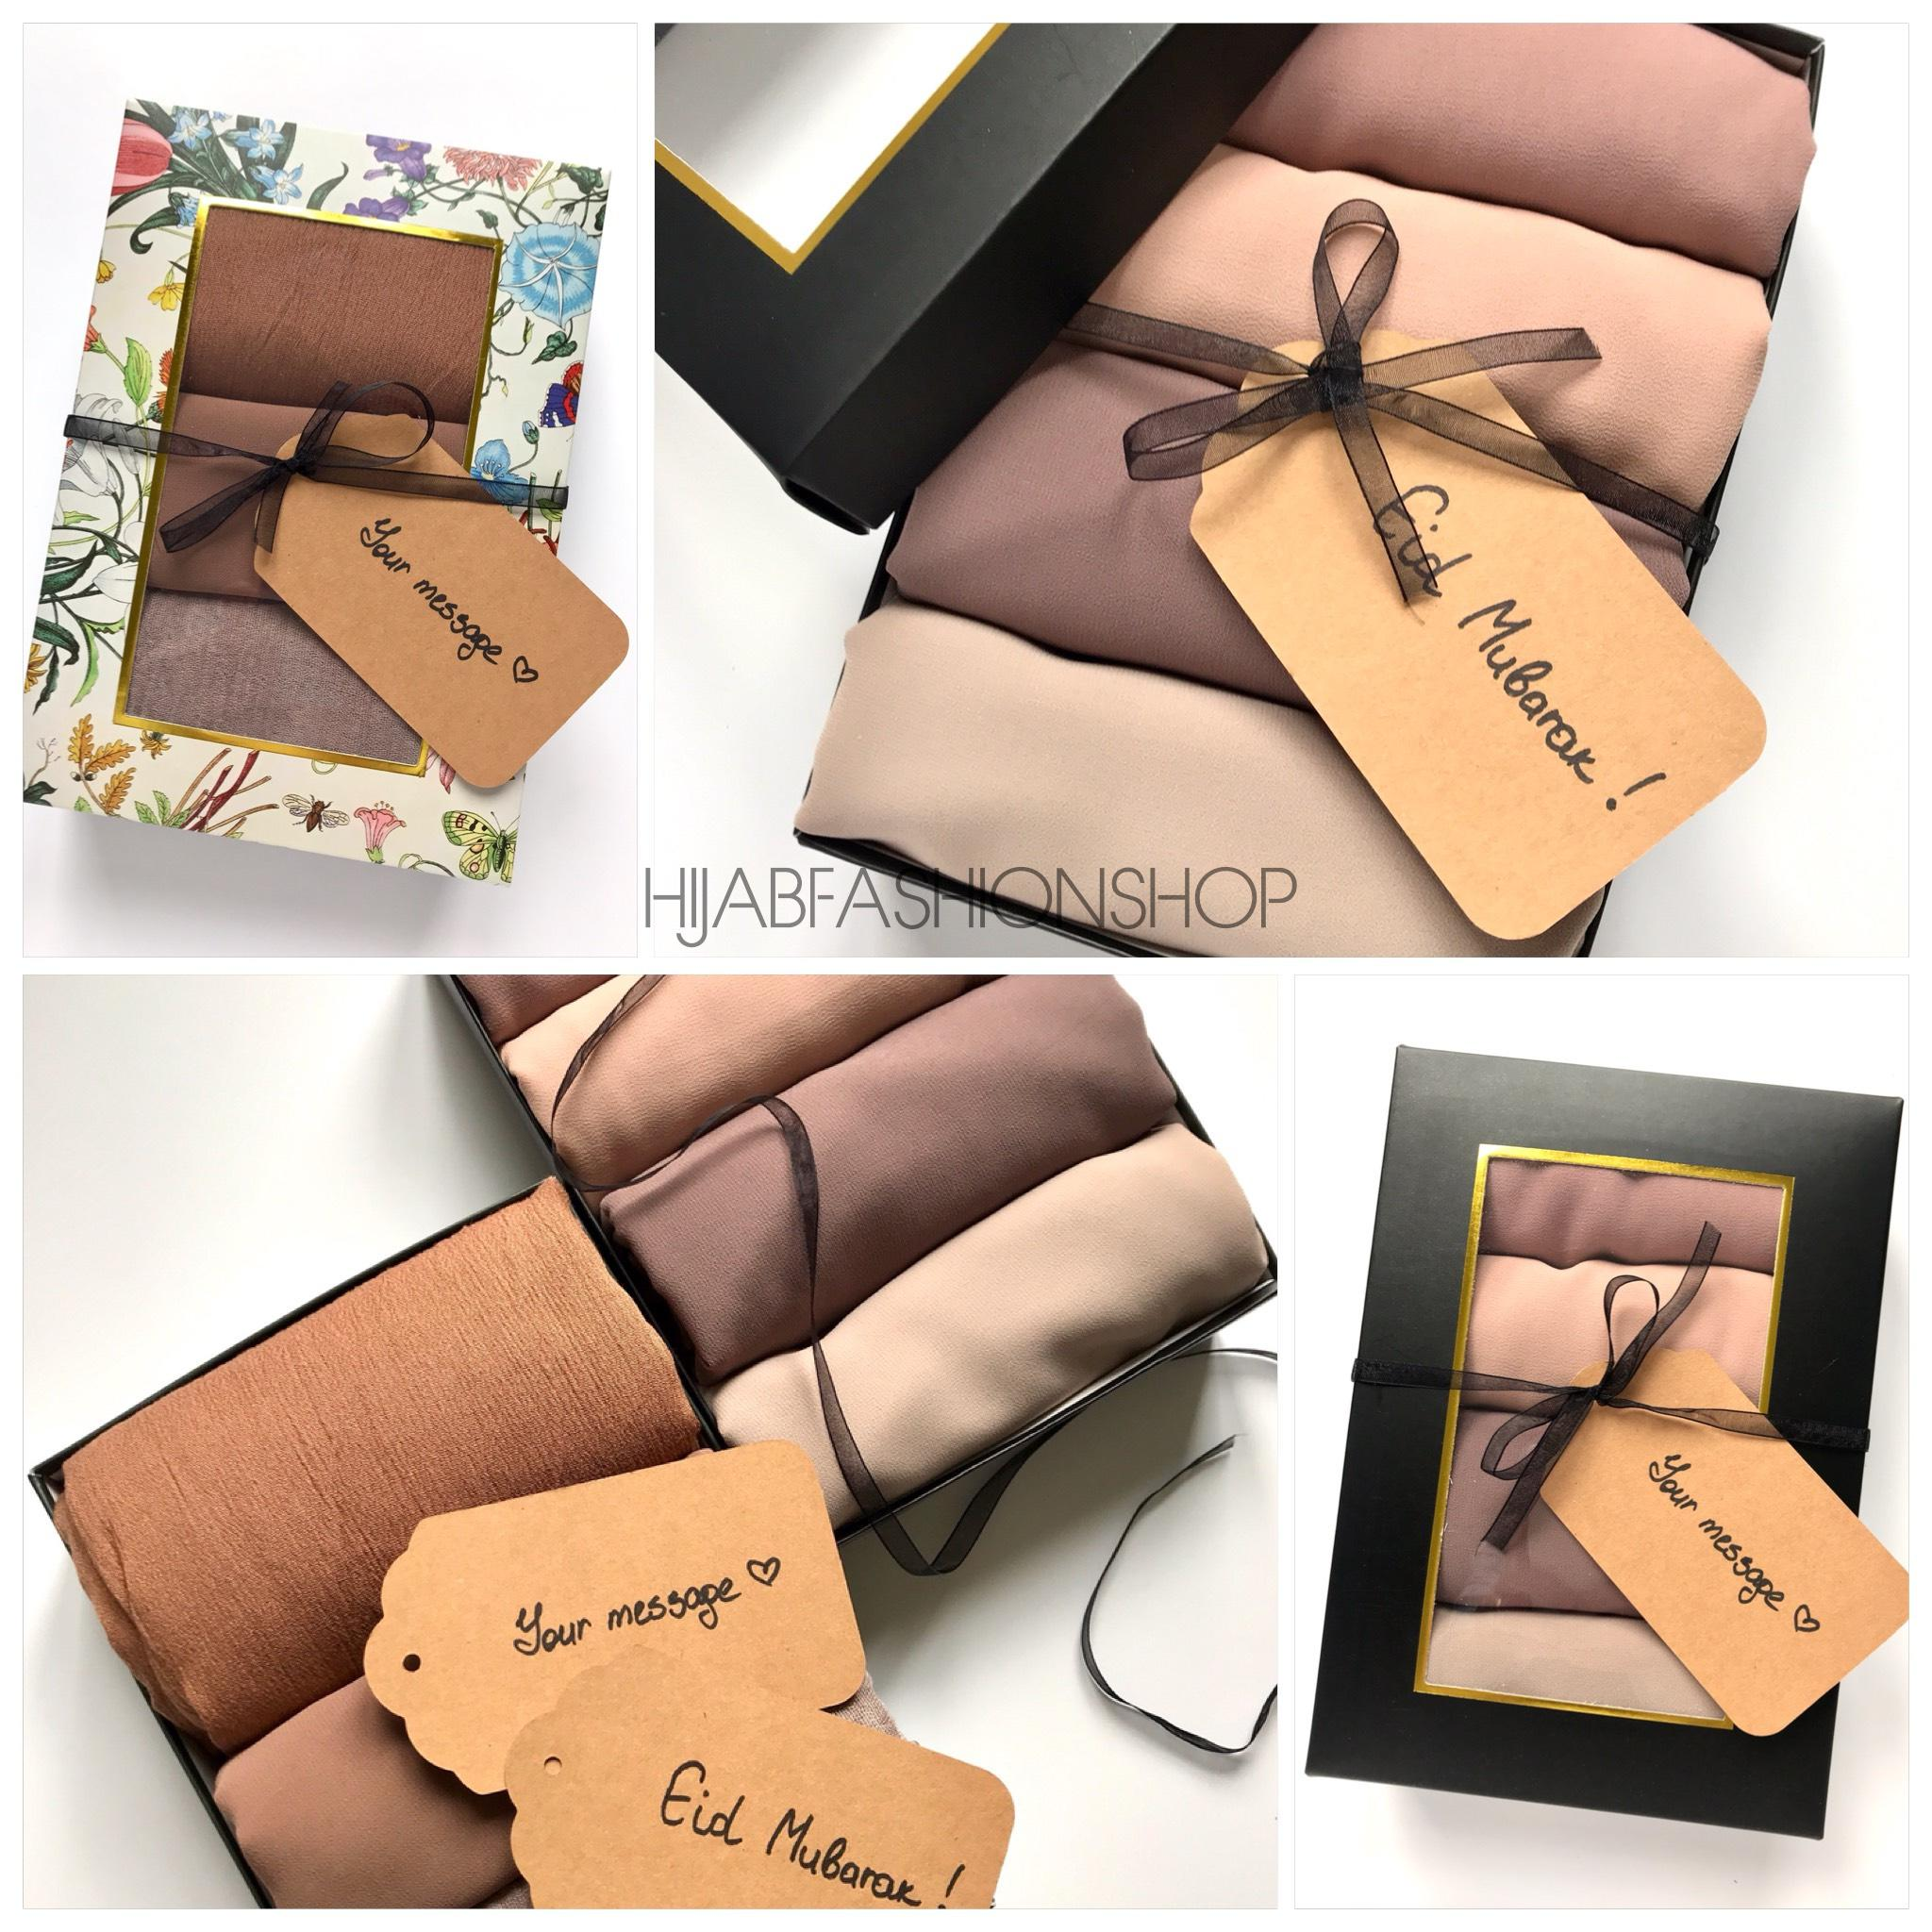 hijab gift box collage